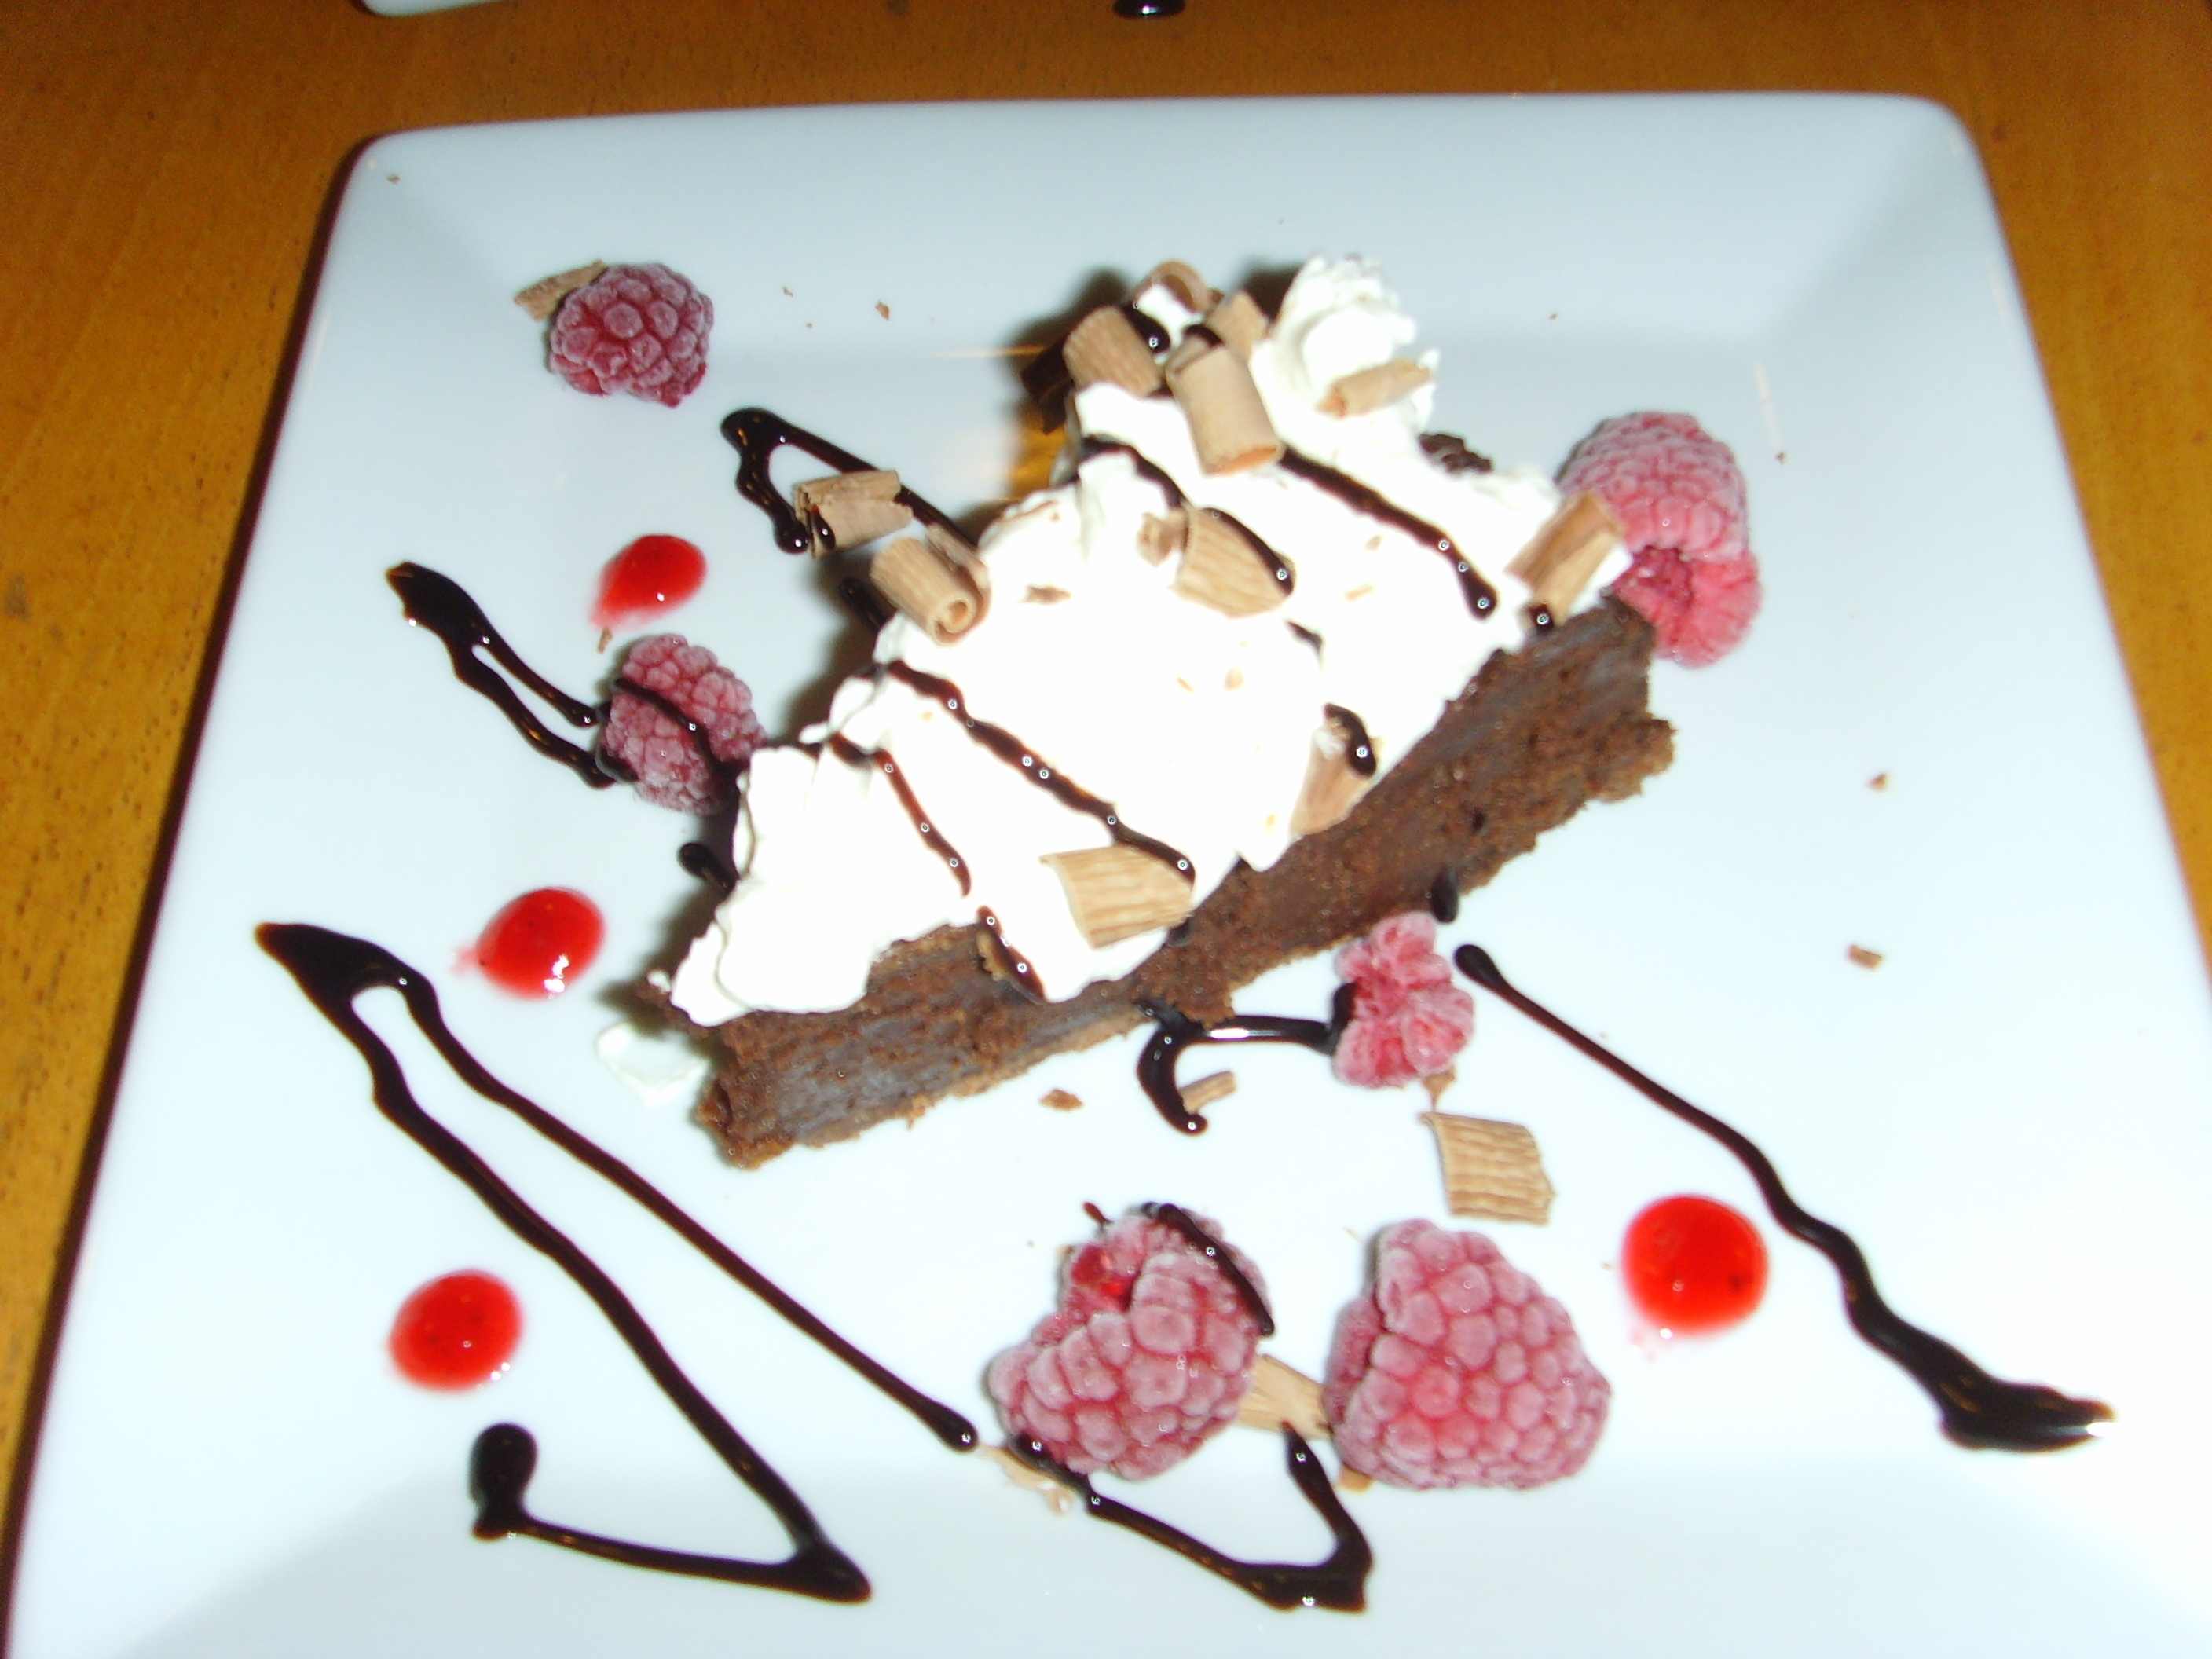 Missisippi mud pie